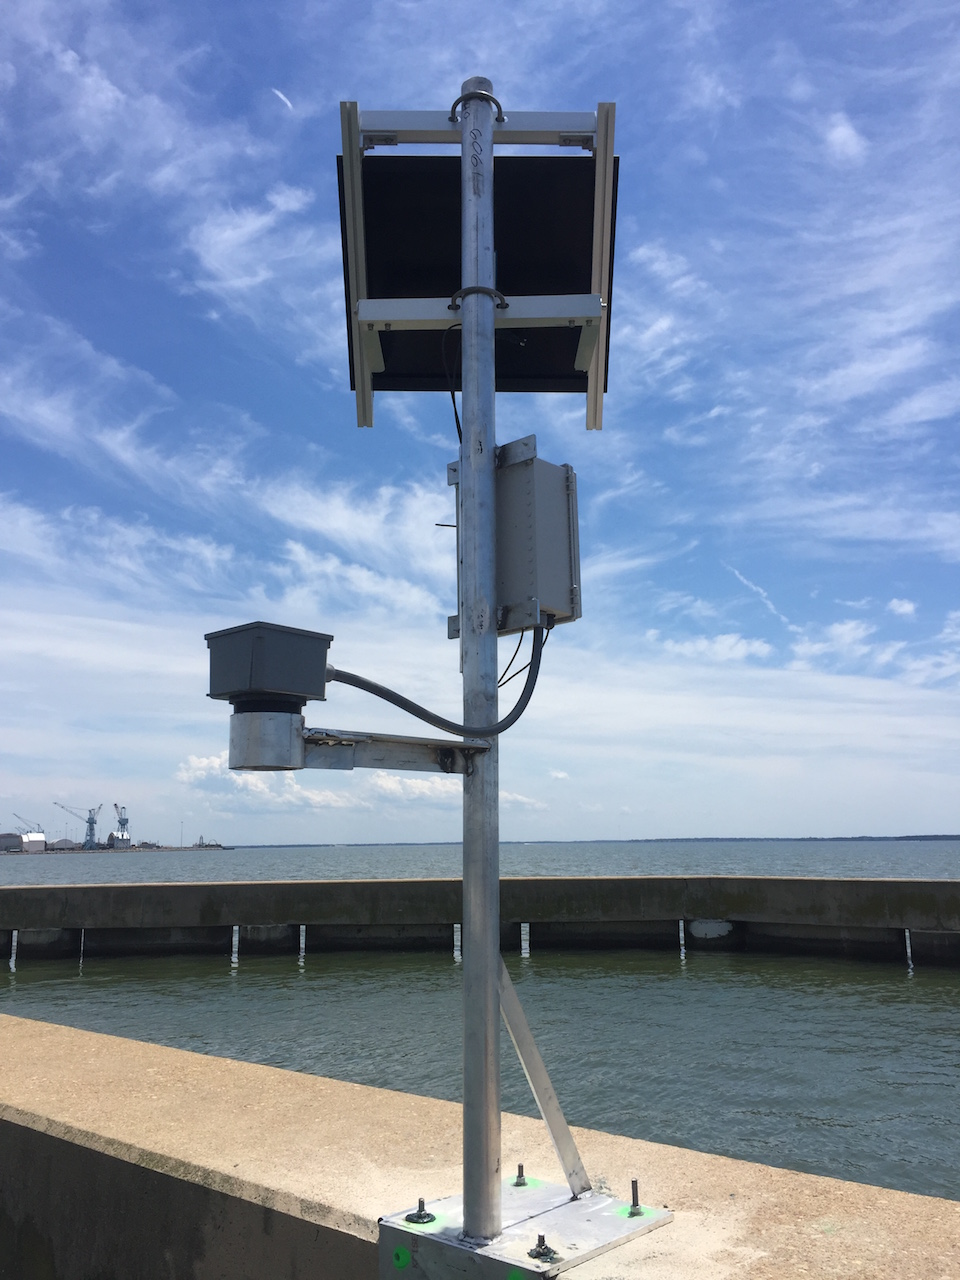 Tools Monitoring Water Levels For Flood Detection And Level Sensor Or Liquid Detector Moisture Alarm Is Compatible With Sensors Made By Just About Any Hardware Manufacturer Around The World Like Flowline Senix Lr30